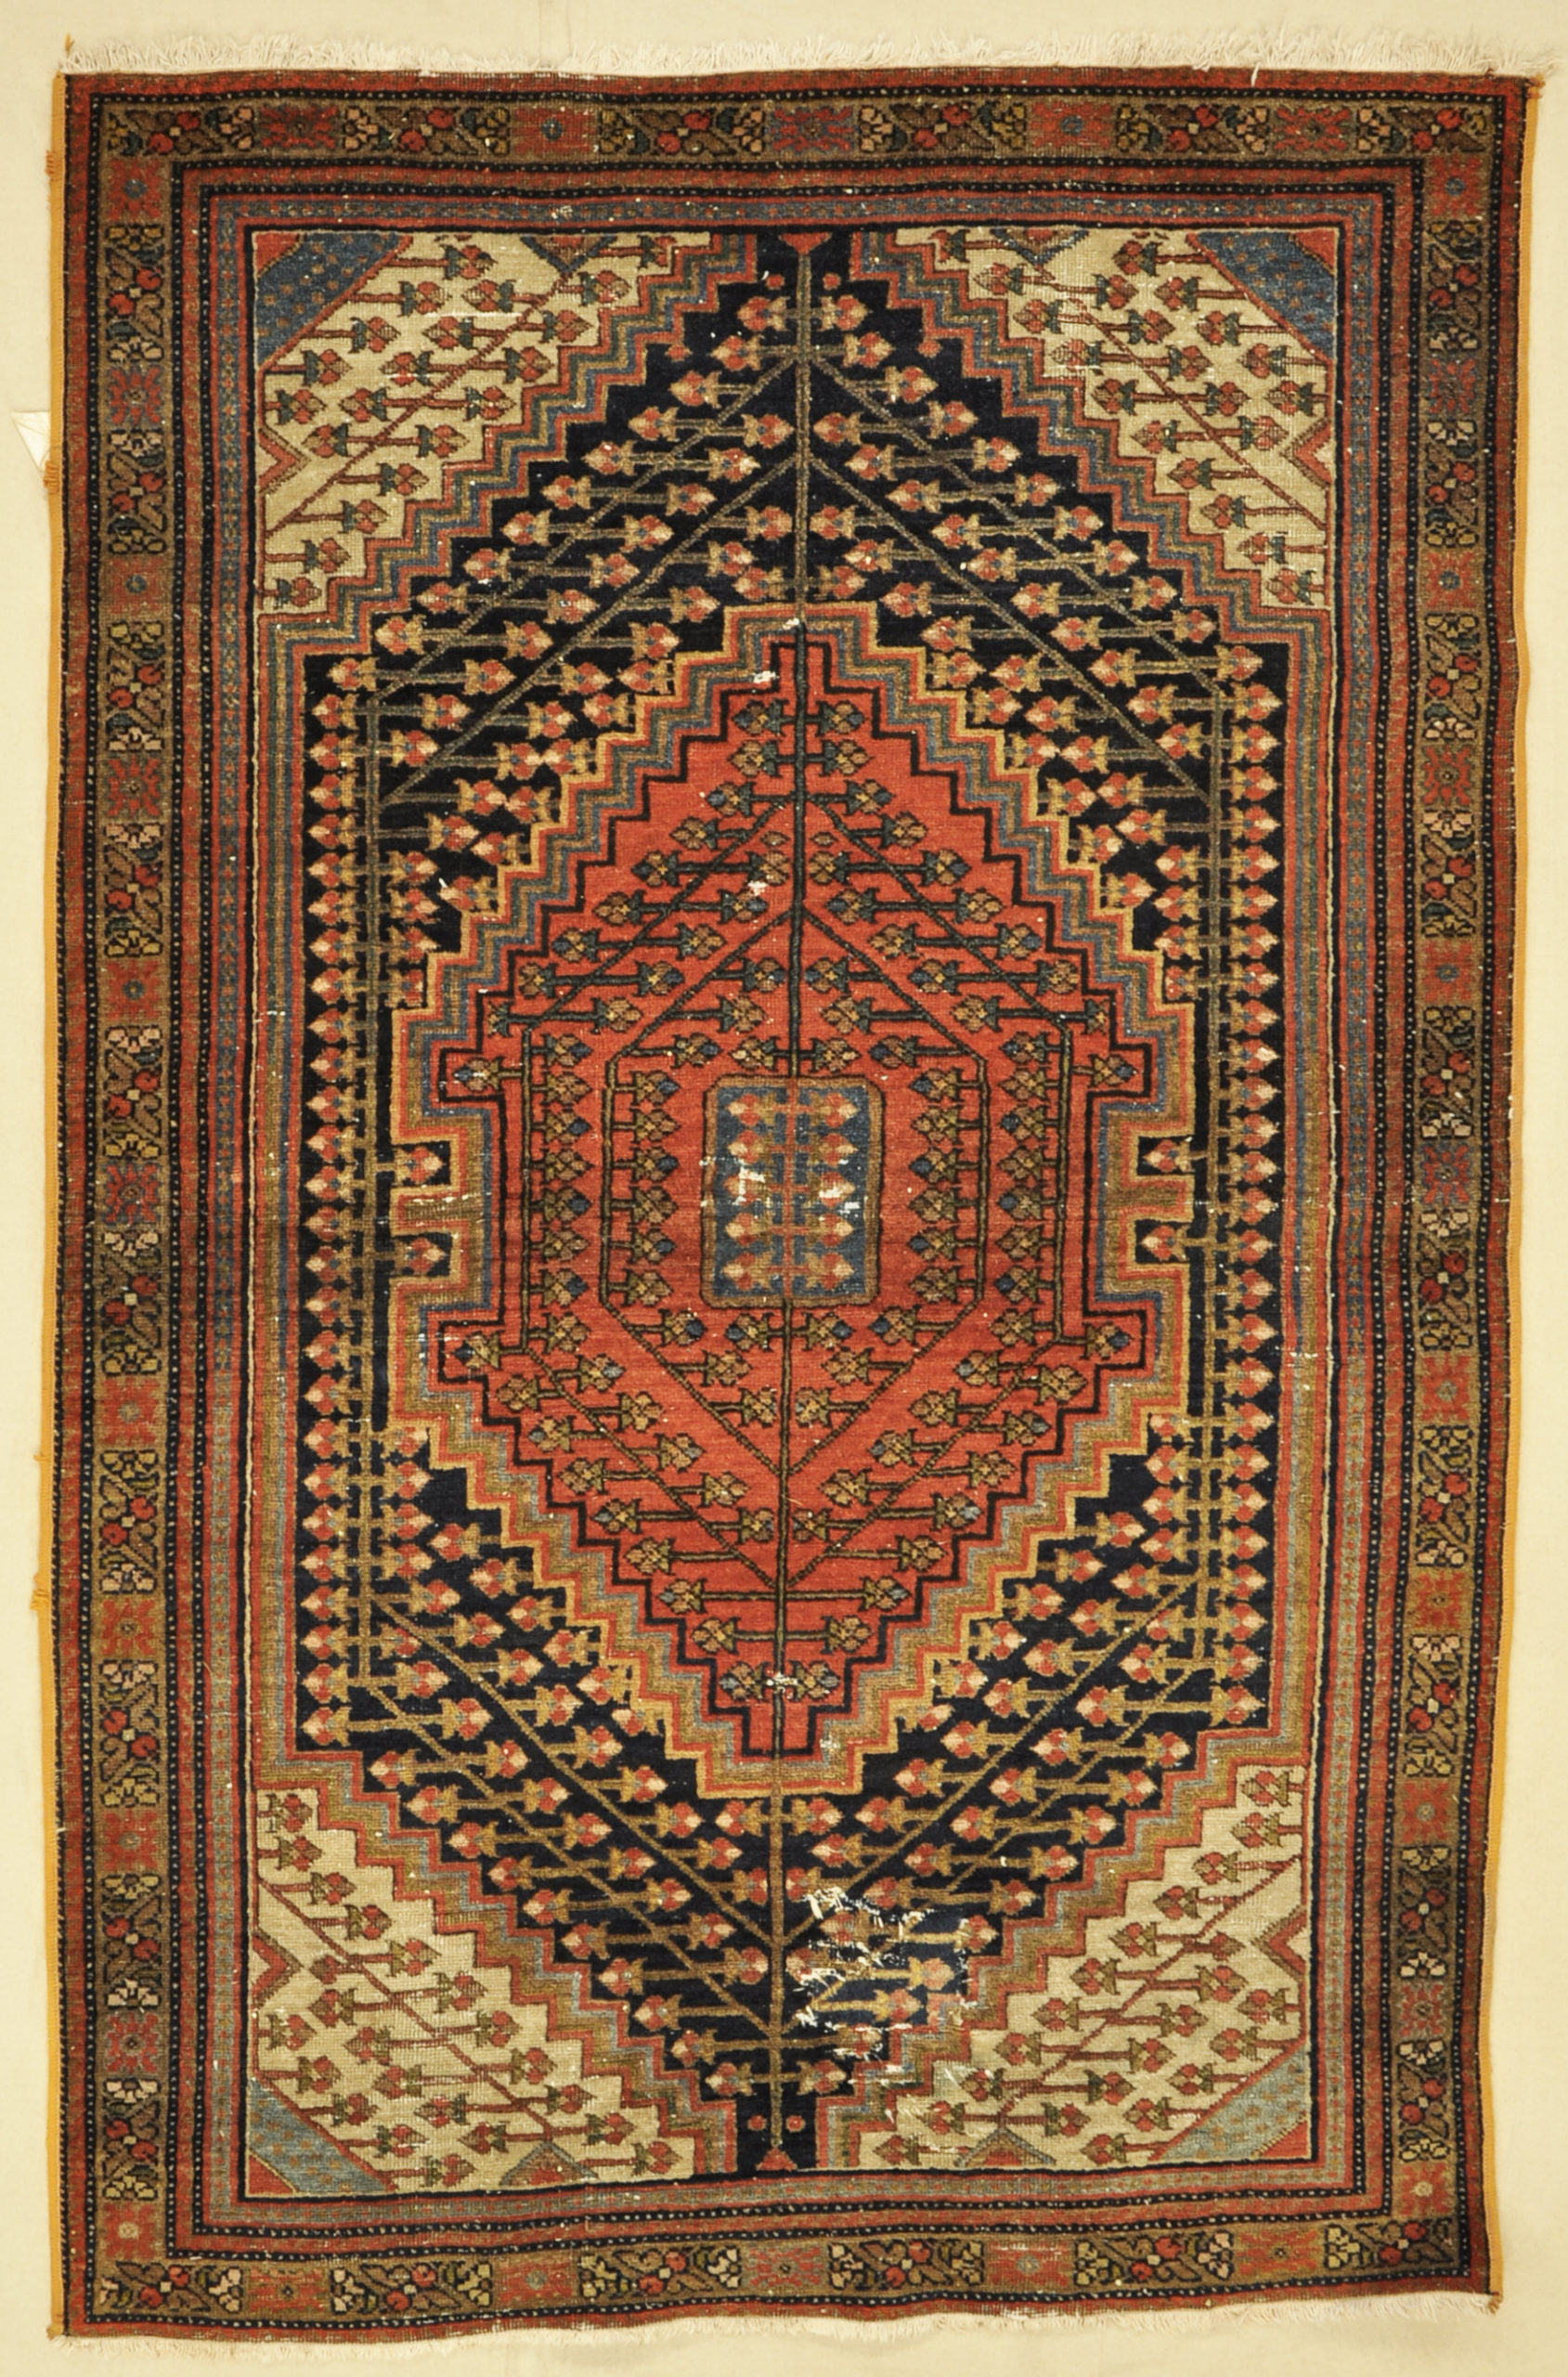 Antique rugs from the Malayer region constitute an important and distinctive group of Persian weavings. Technically they stand between those made in nearby Senneh and Hamadan. 4'5 x 6'9